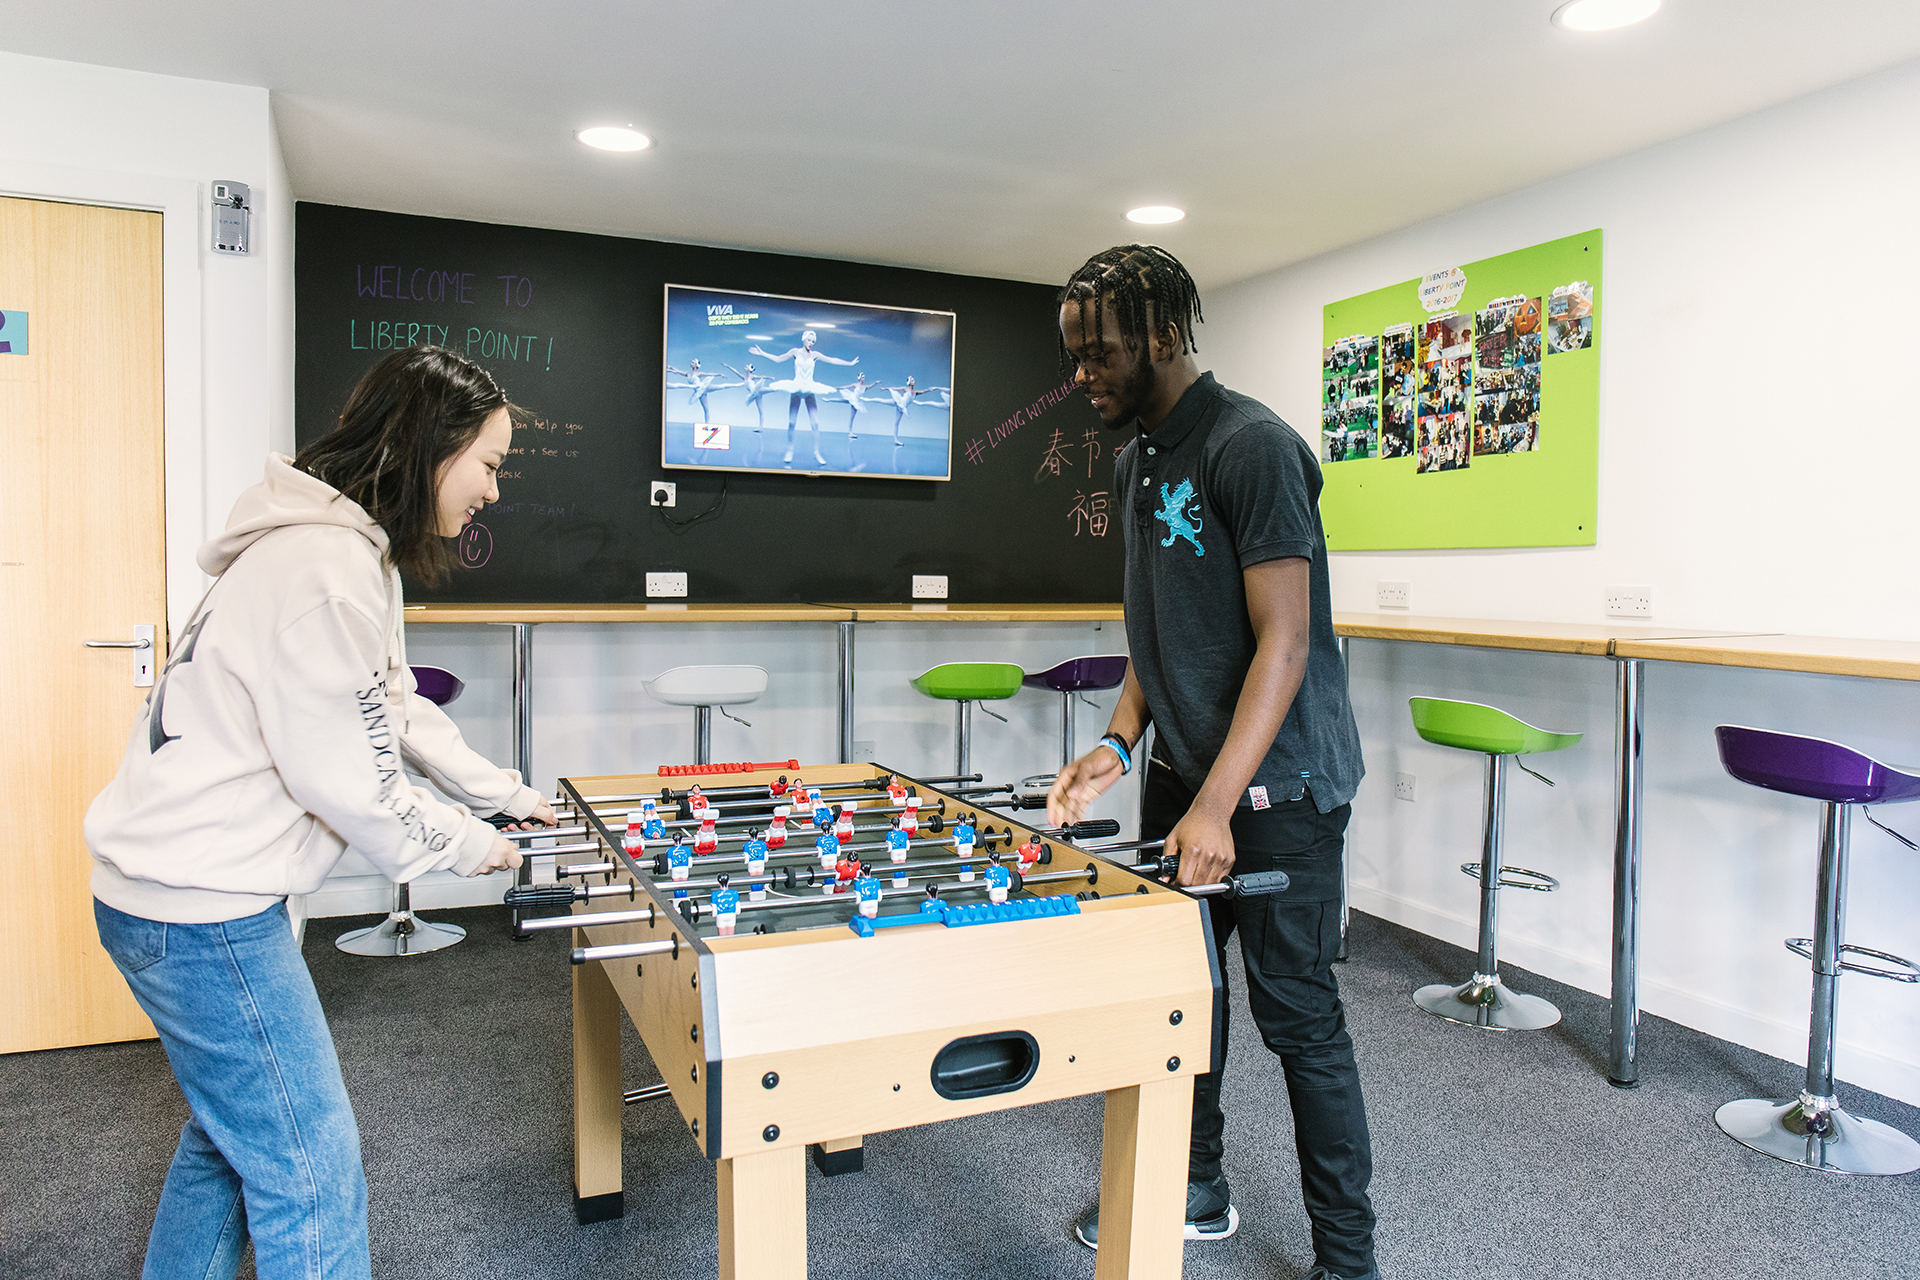 International students playing table football in the breakout area